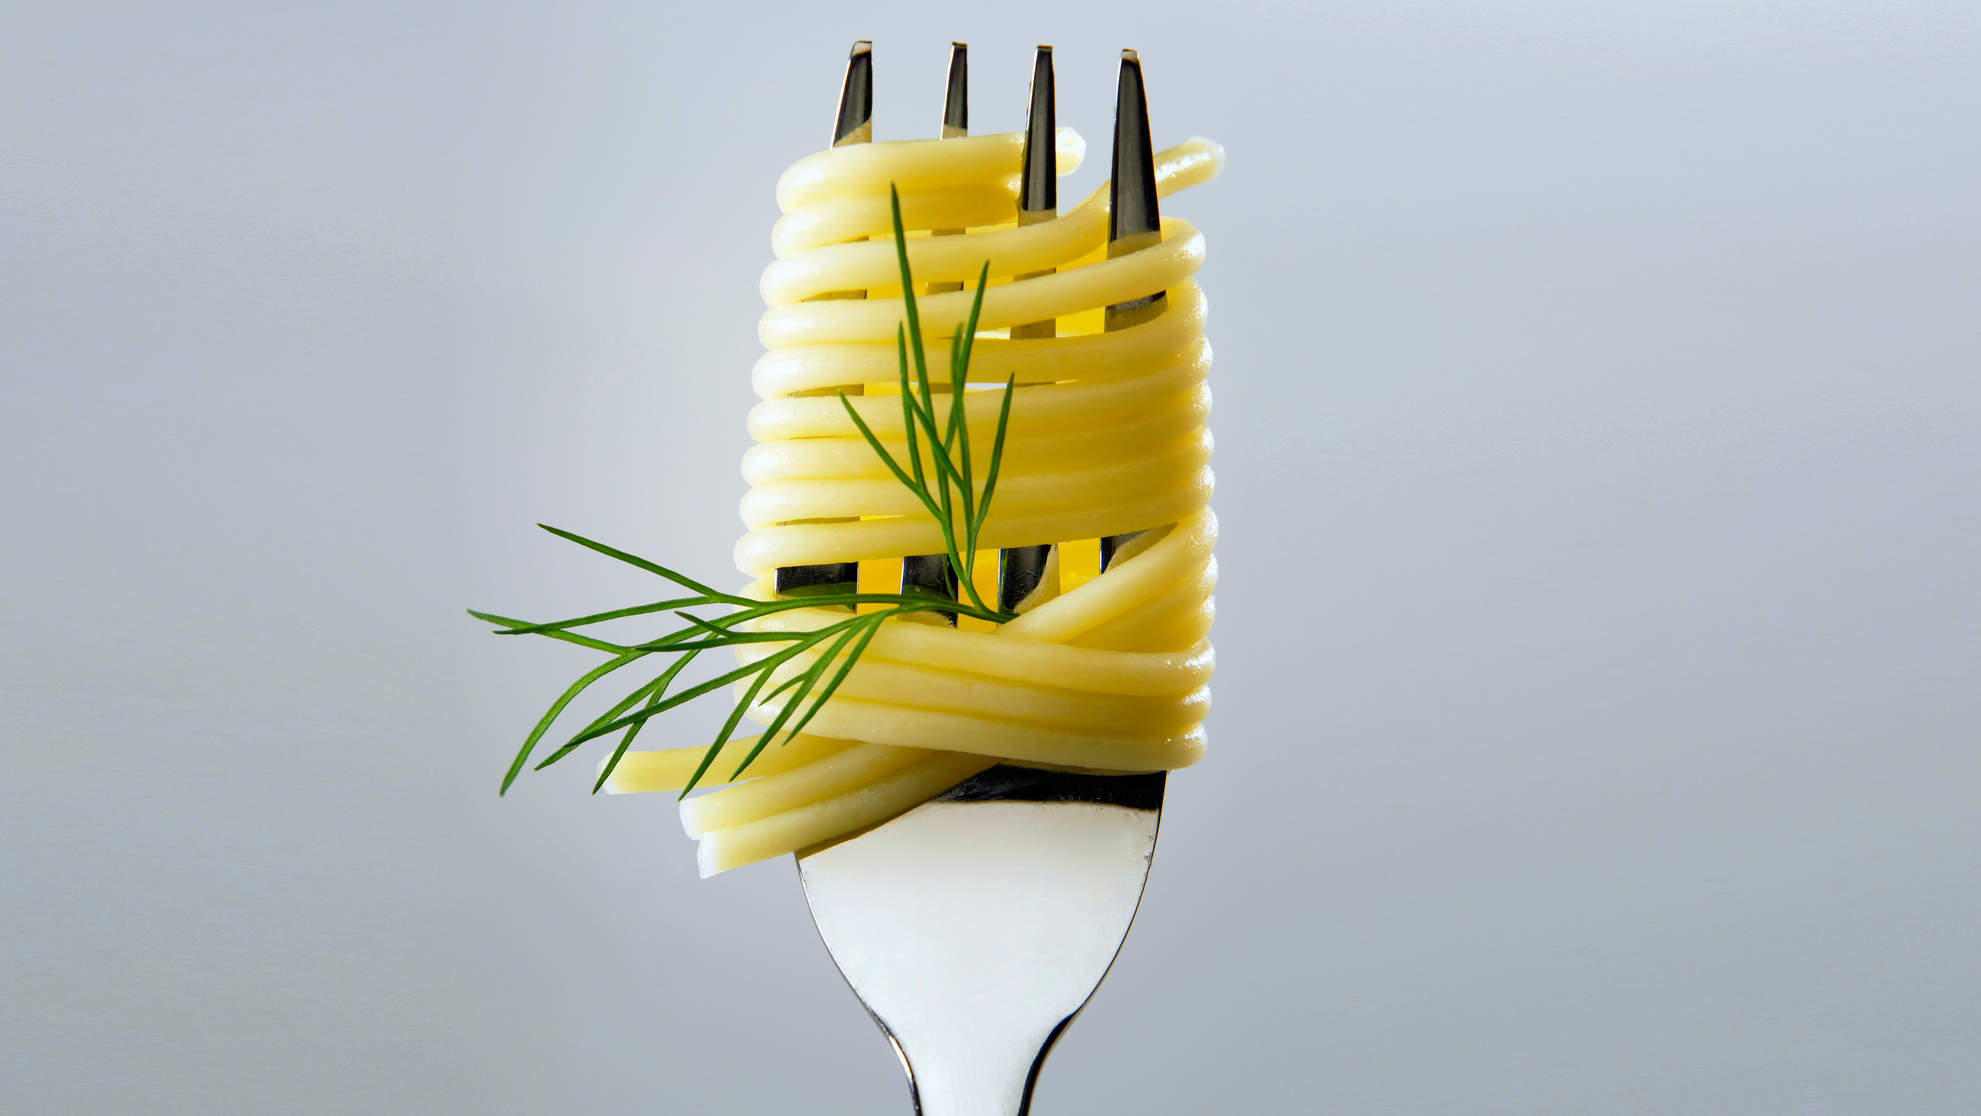 feed-gut-pasta-fork